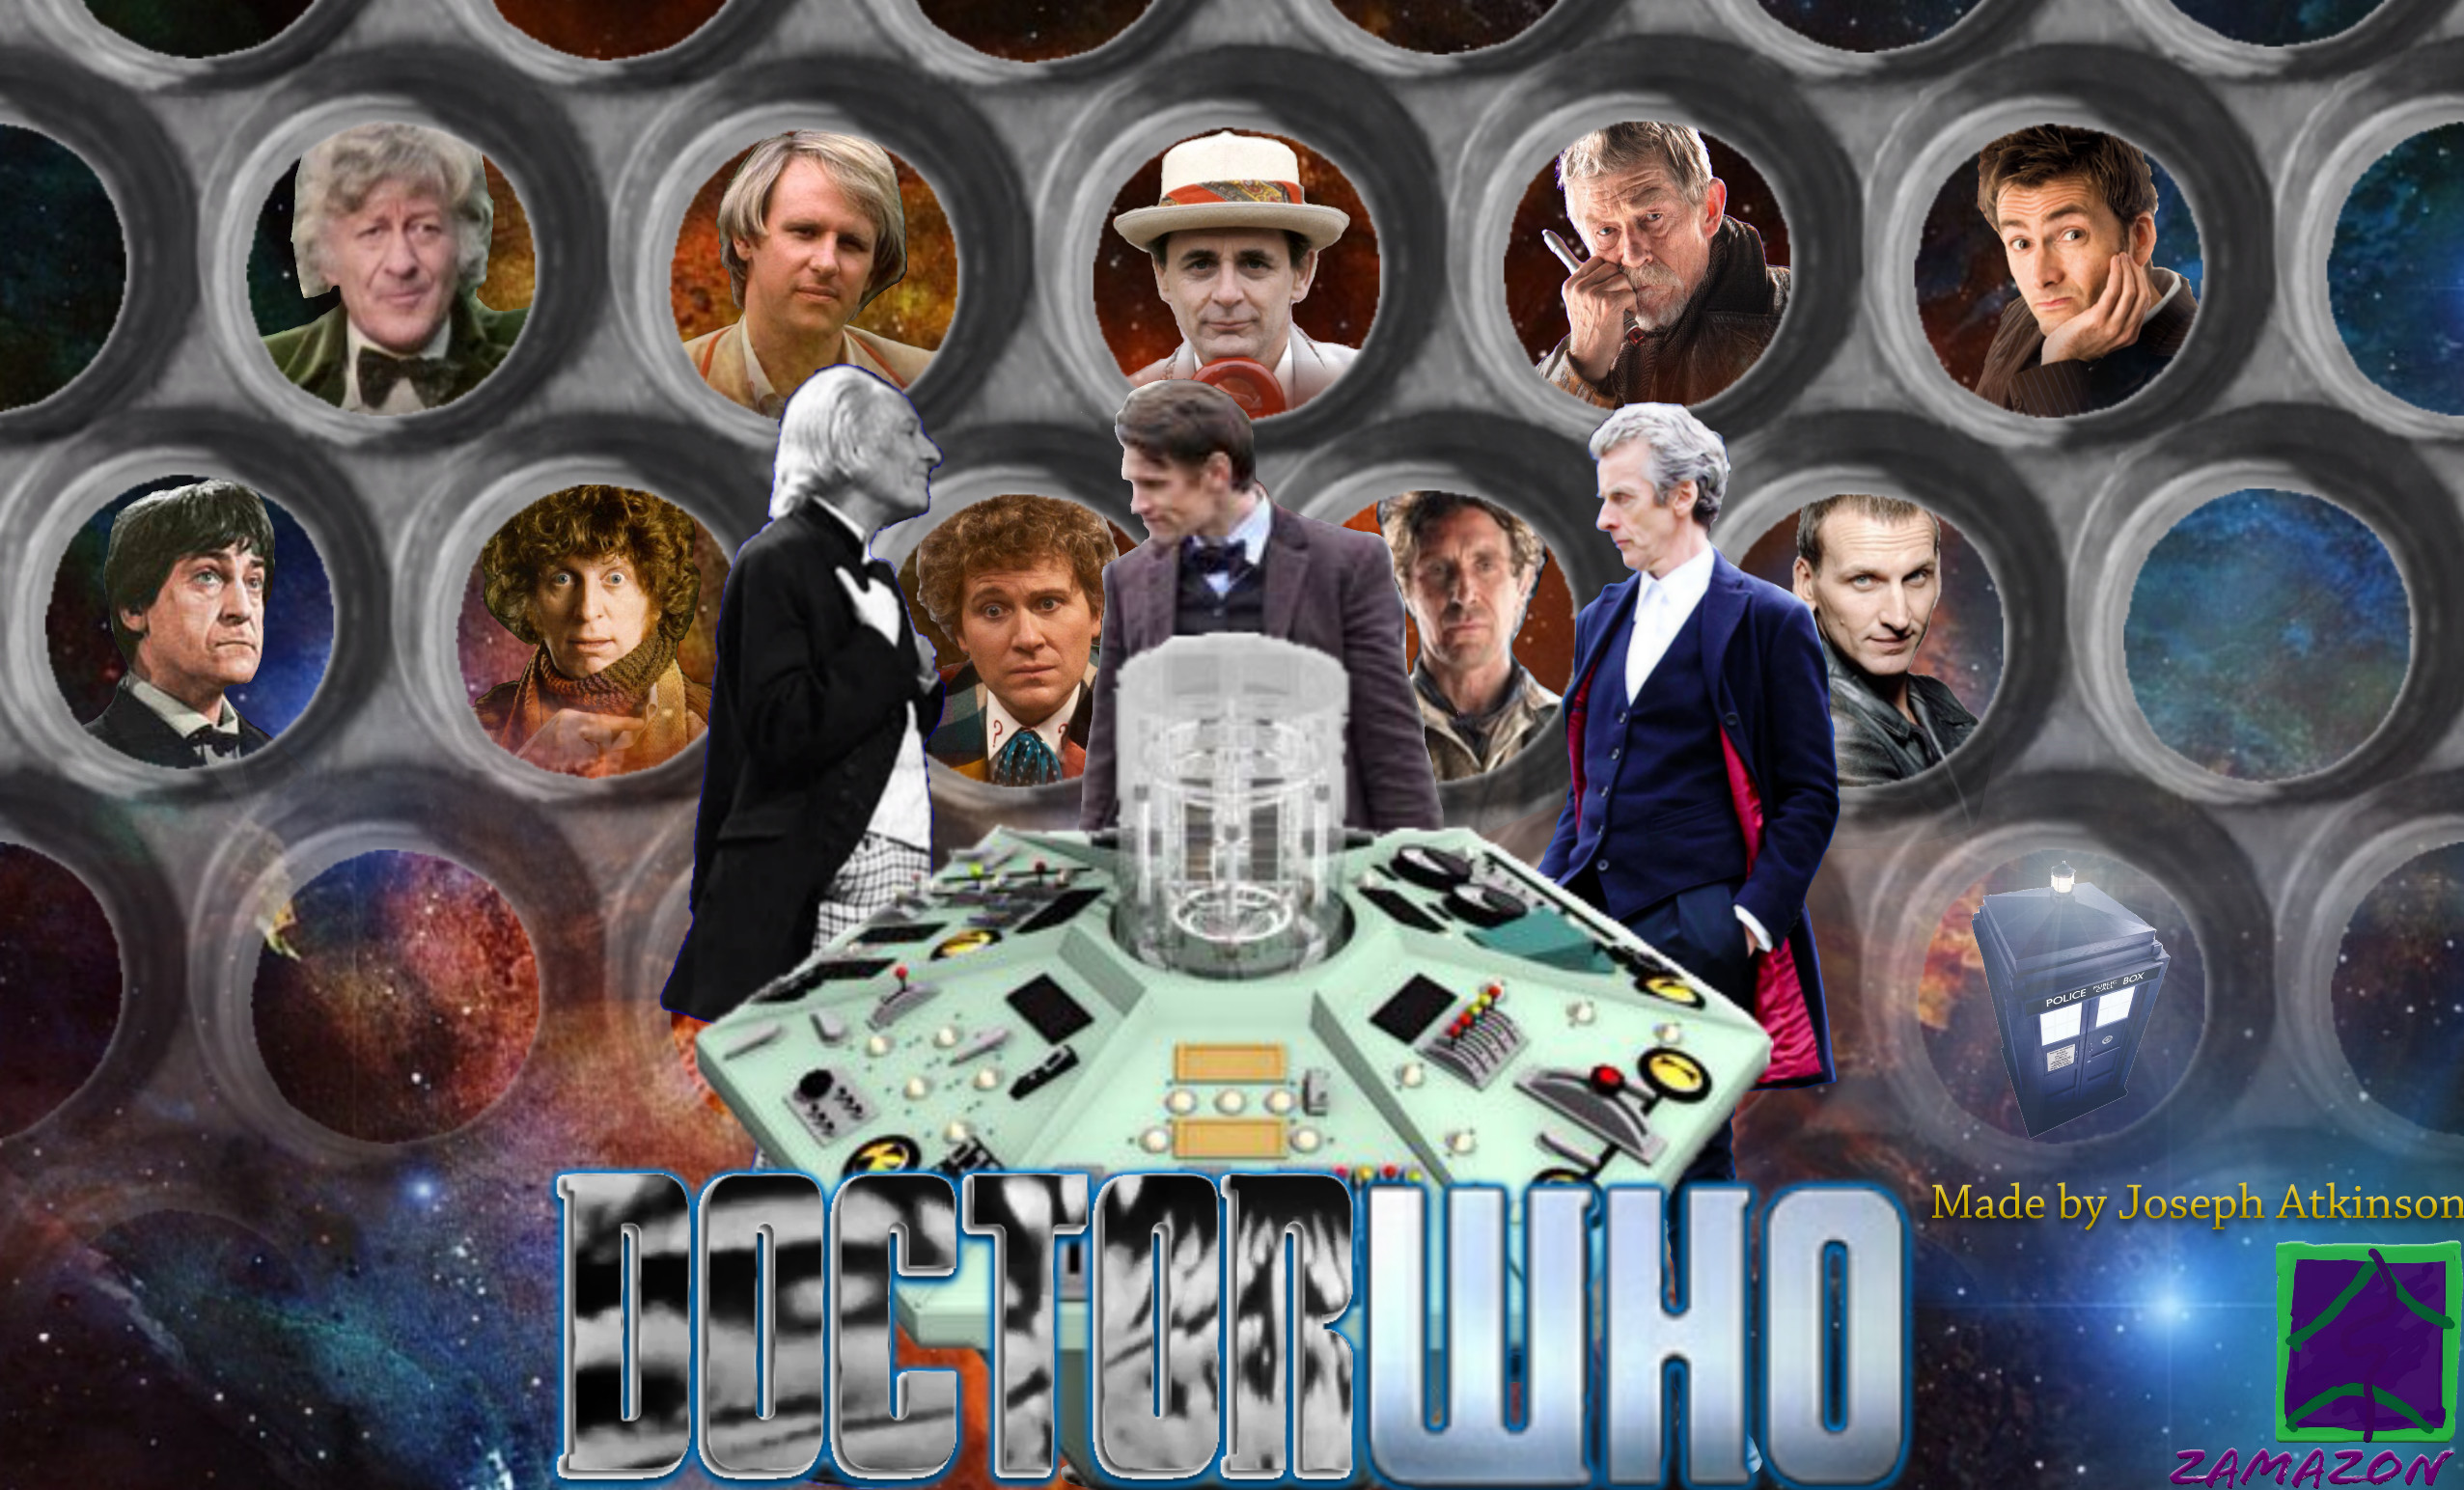 2553x1544 The 13 doctors by vvjosephvv The 13 doctors by vvjosephvv